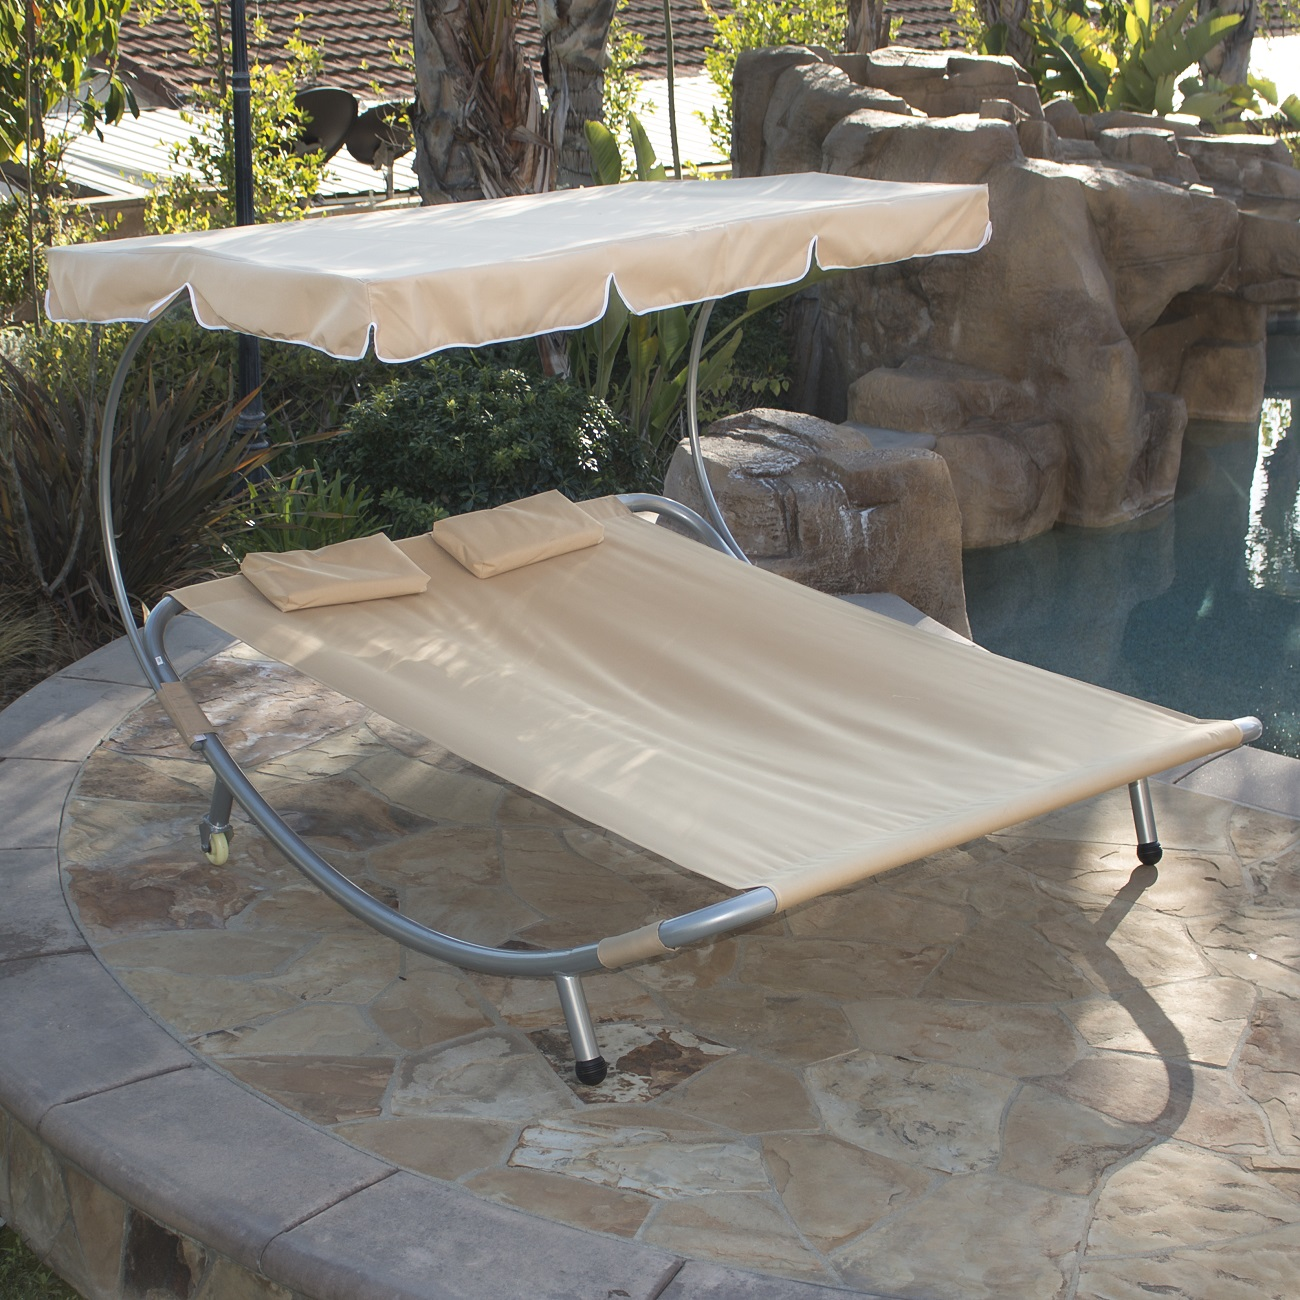 NEW Hammock Bed Lounger Double Chair Pool Chaise Lounge with ...